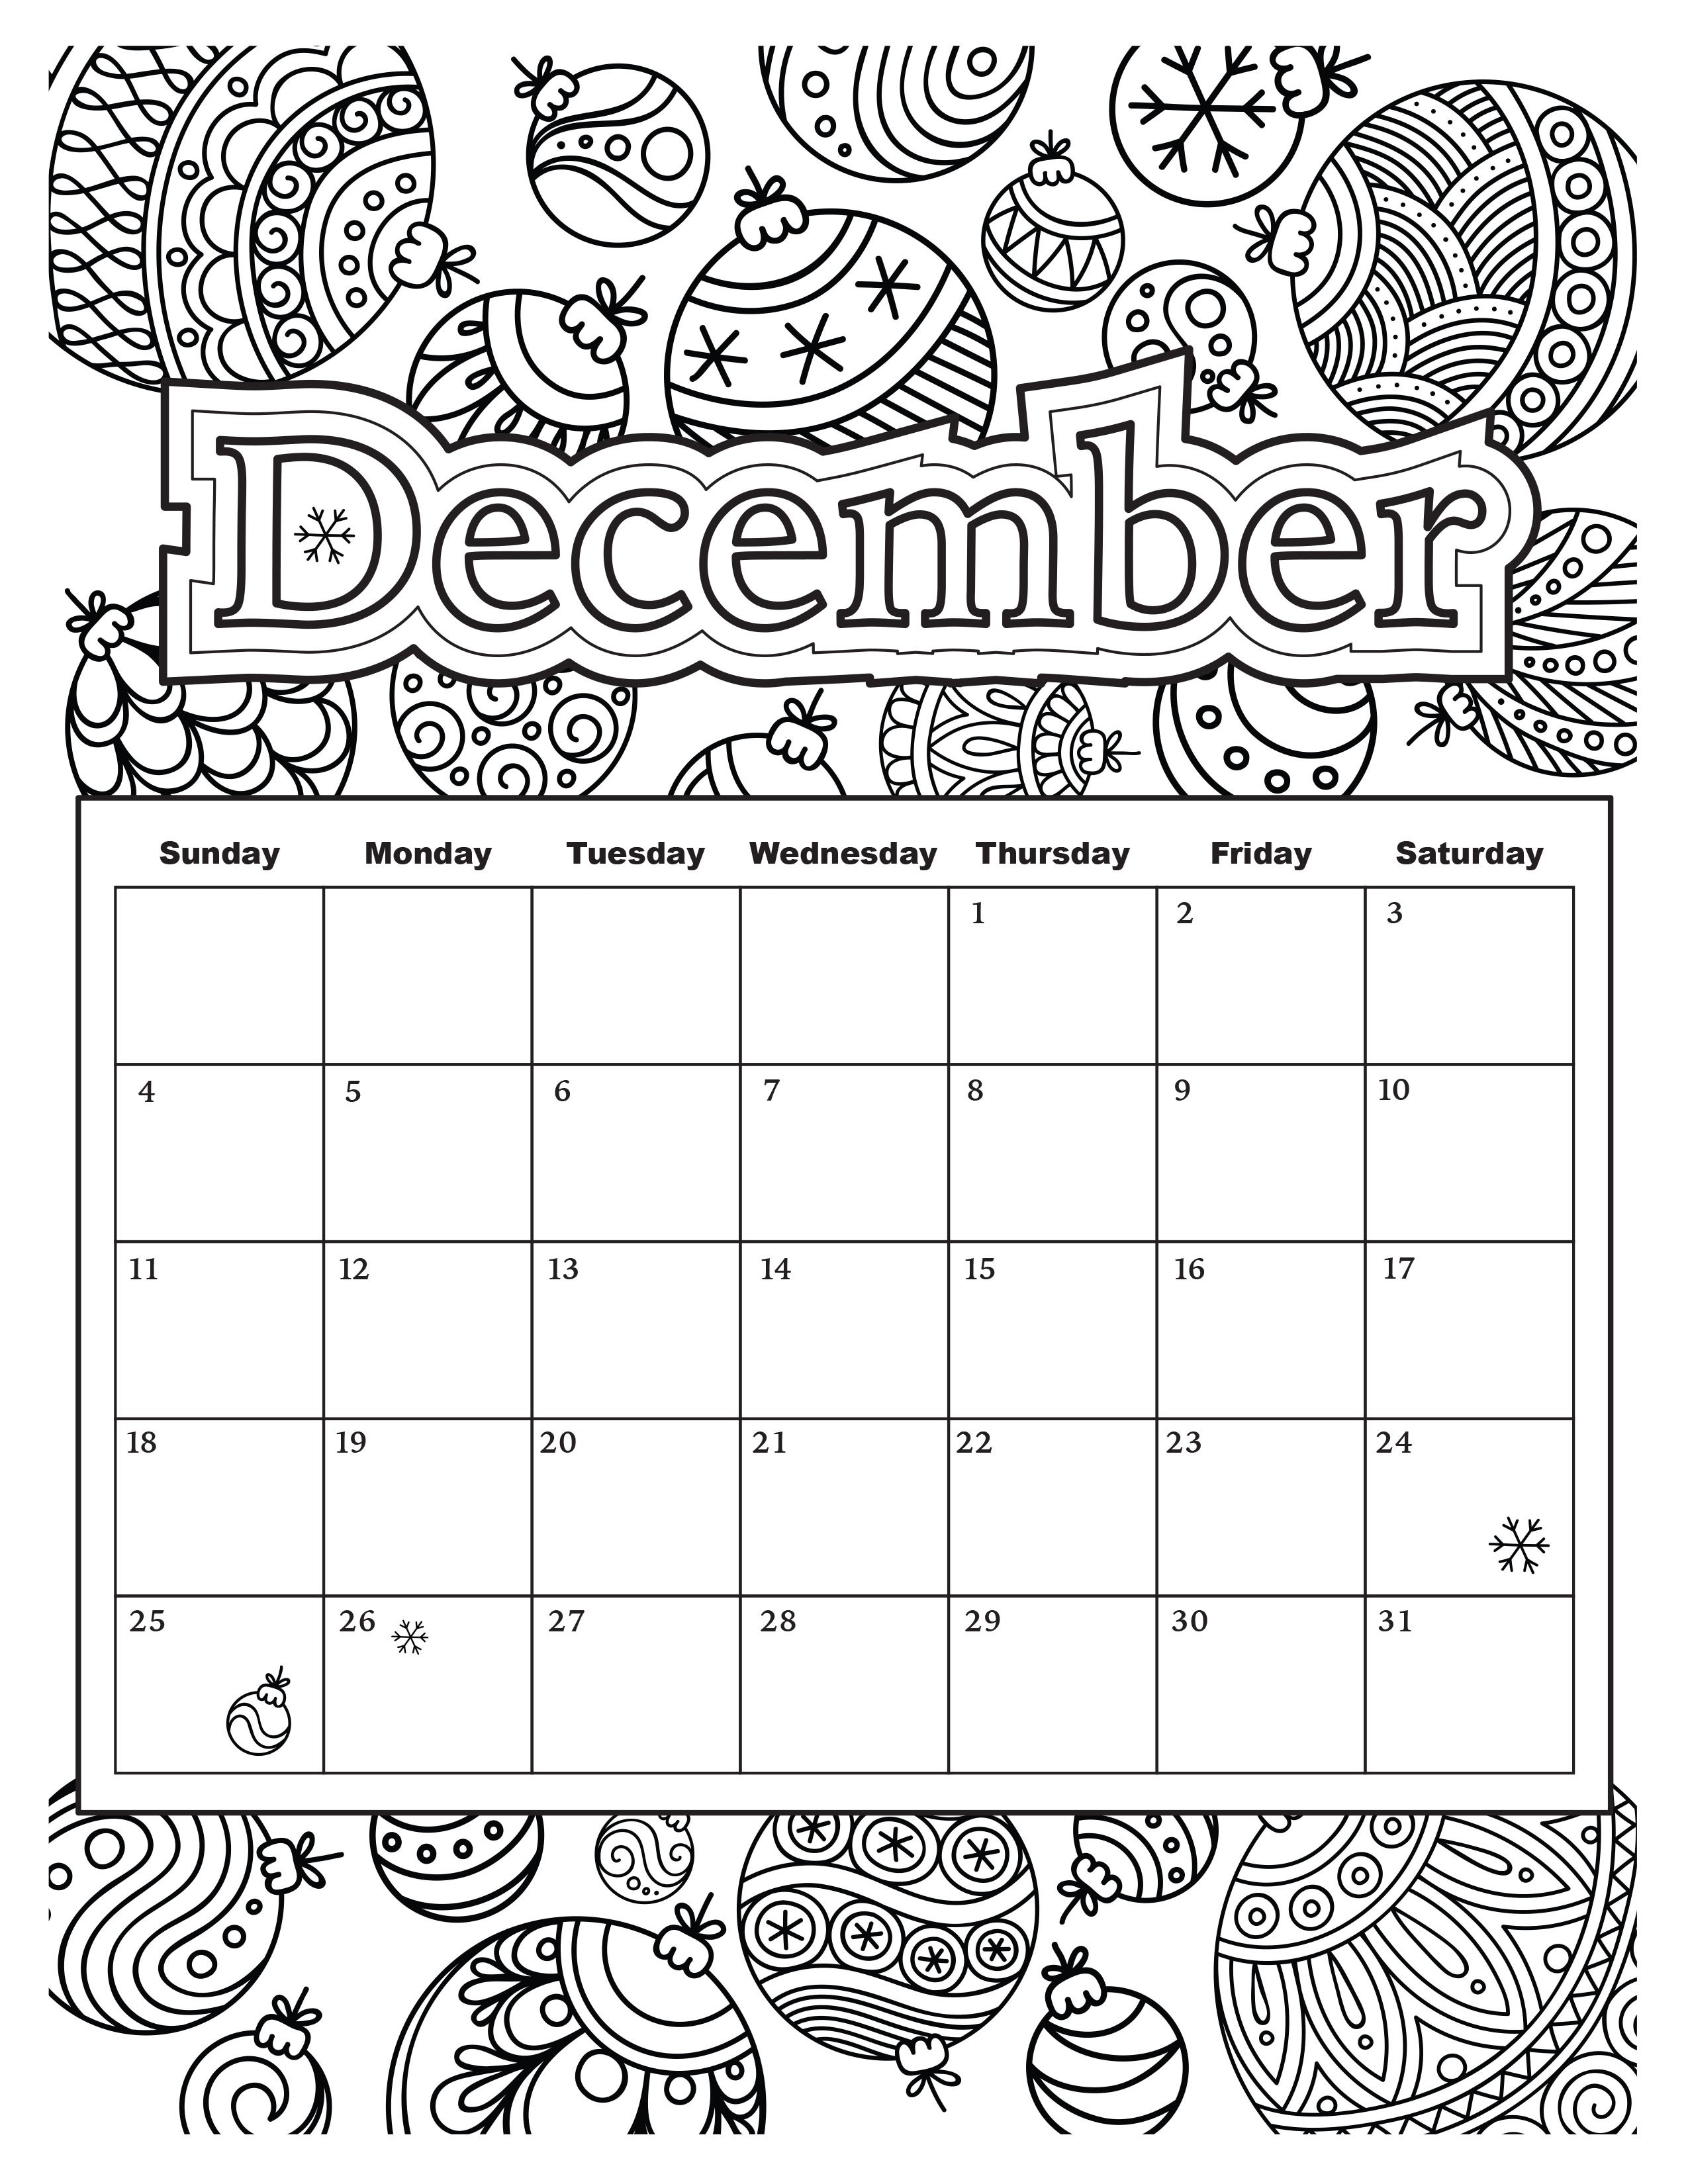 Christmas In July Coloring Book With Free Download Pages From Popular Adult Books